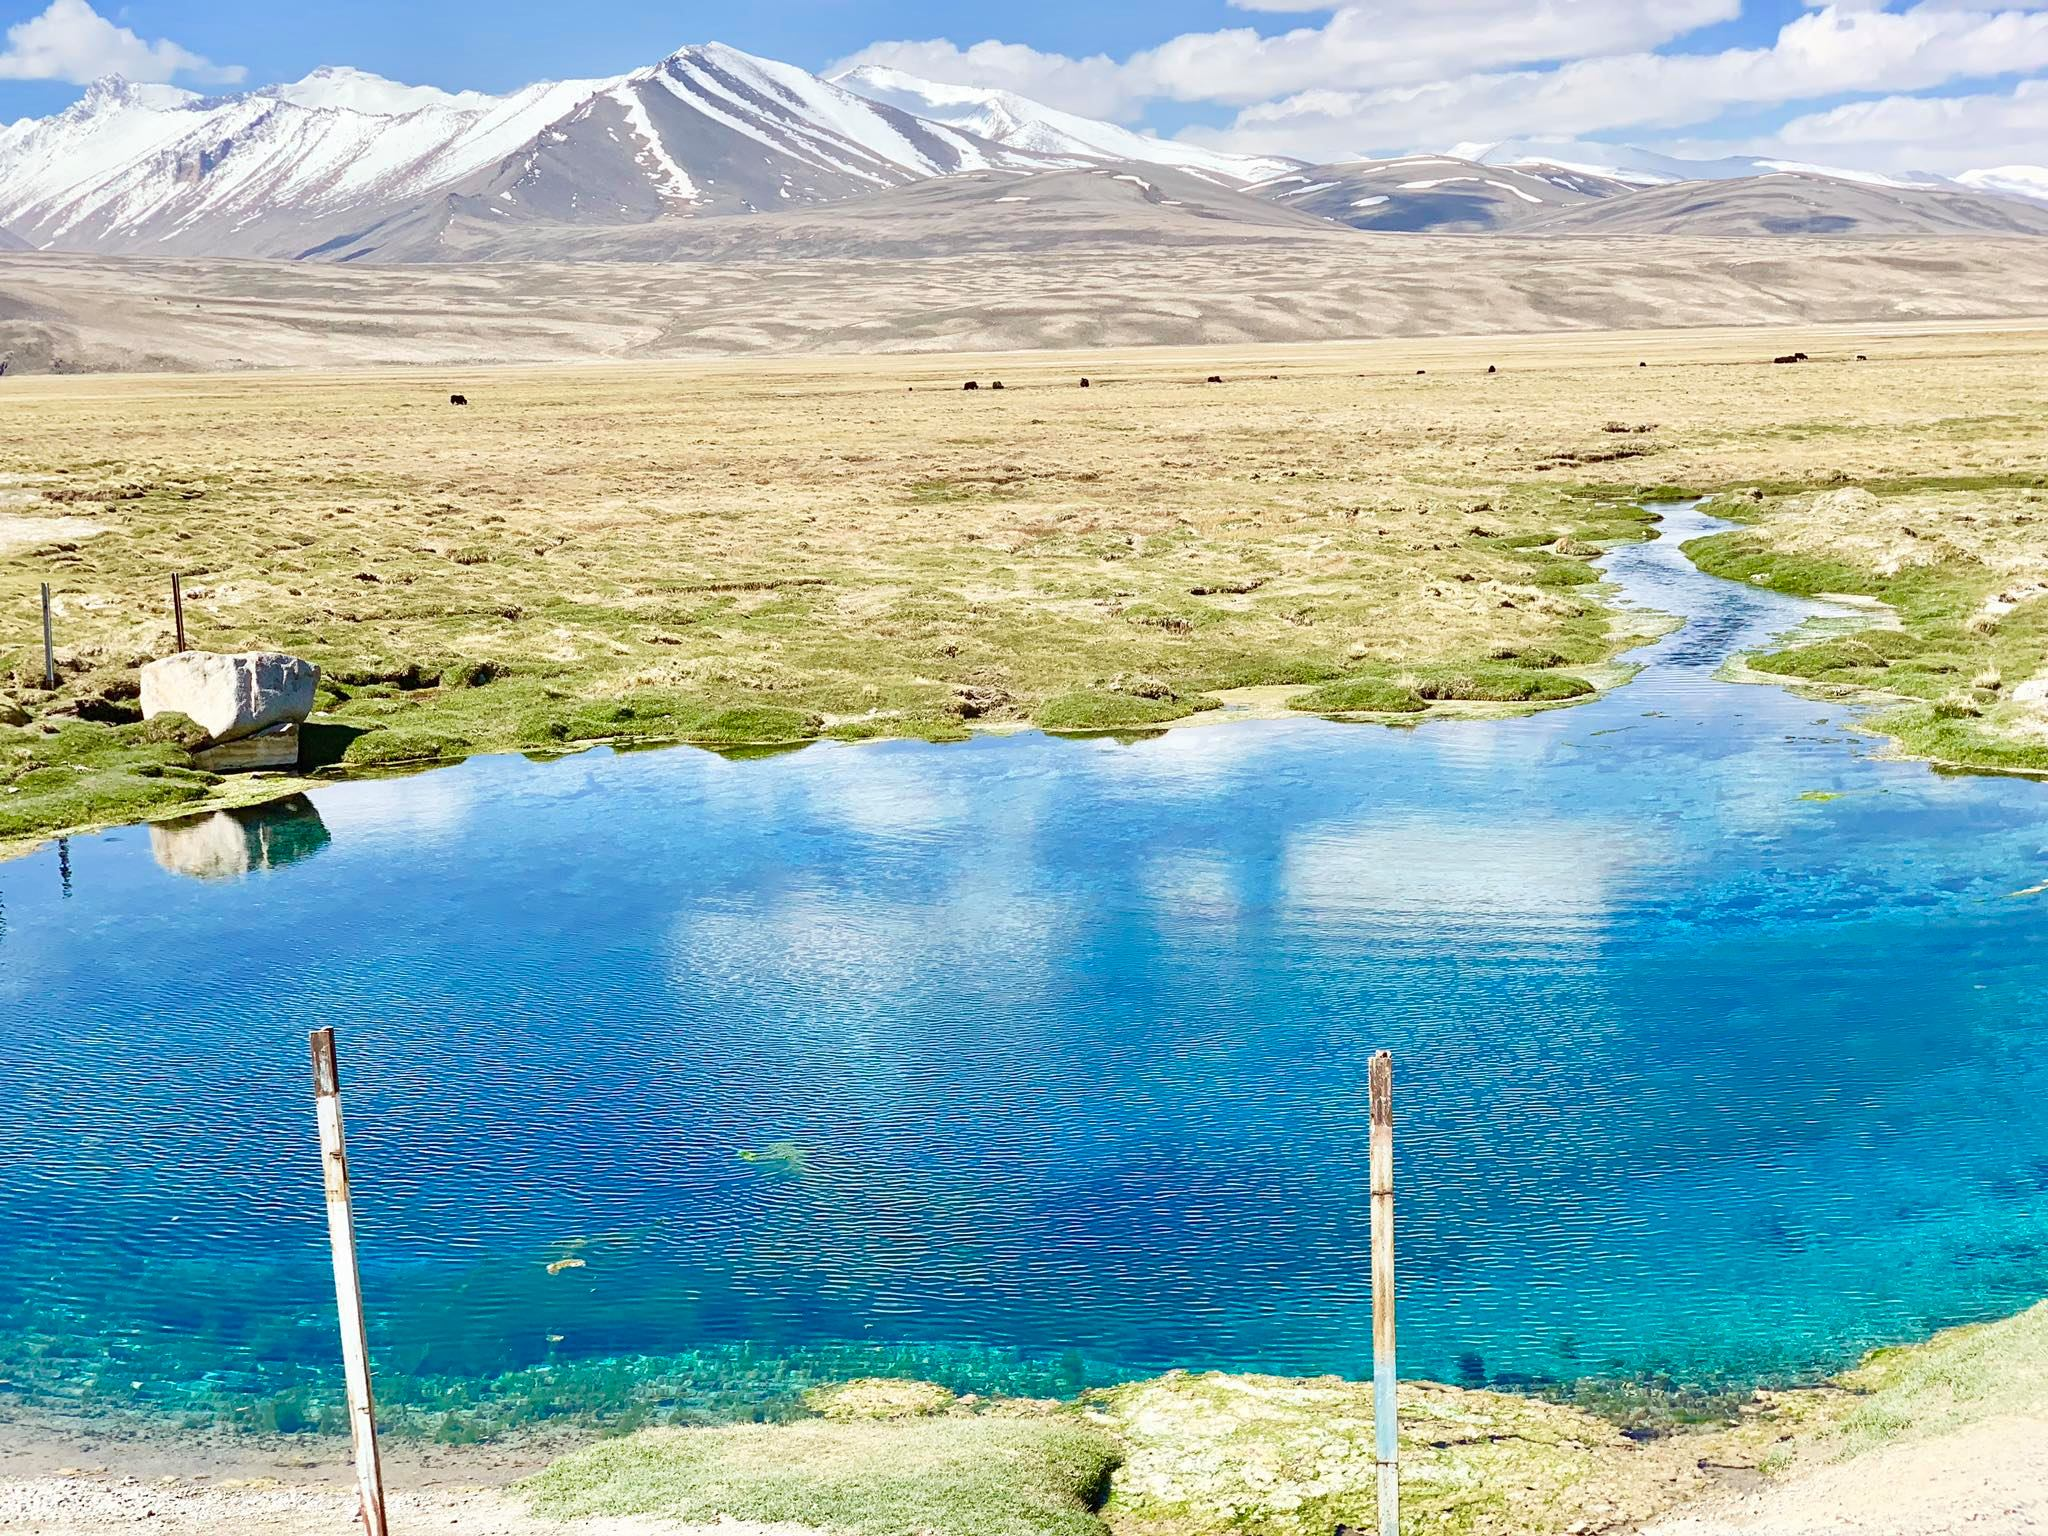 Kach Solo Travels in 2019 Our unexpected last stop during our Pamir Highway Roadtrip.jpg